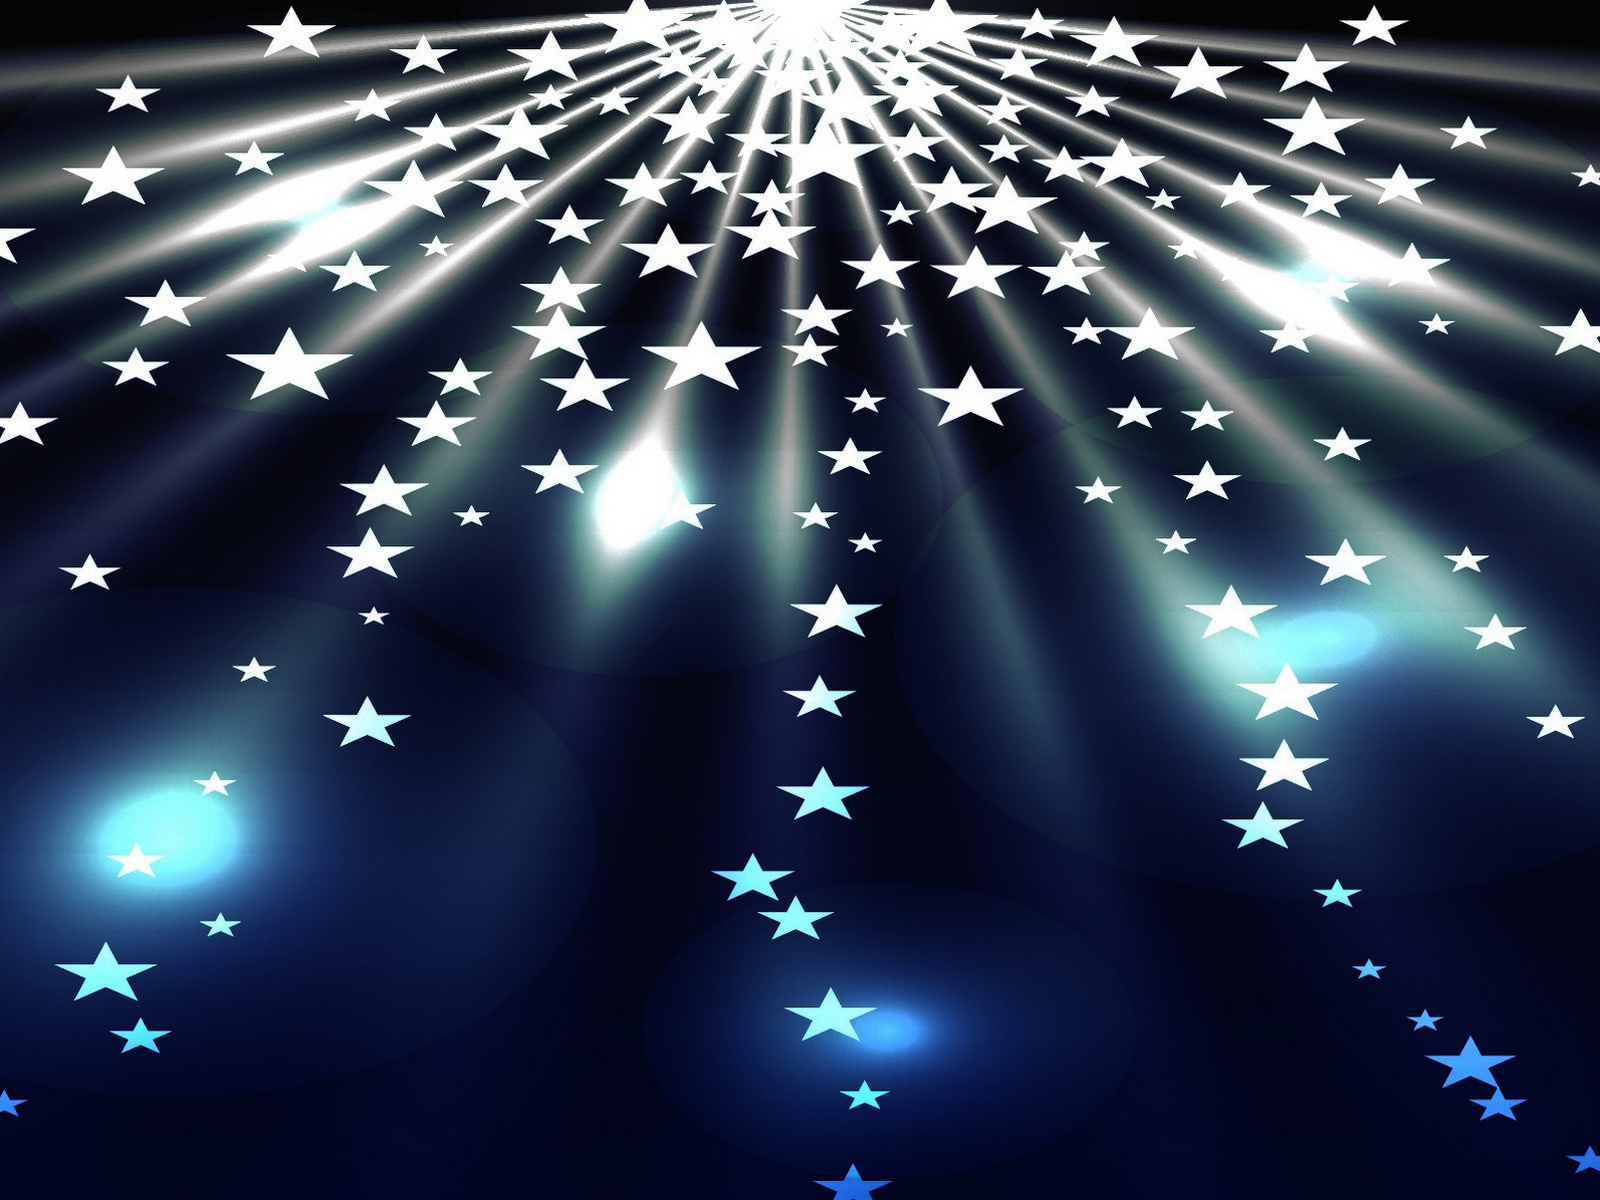 White Stars PPT Backgrounds